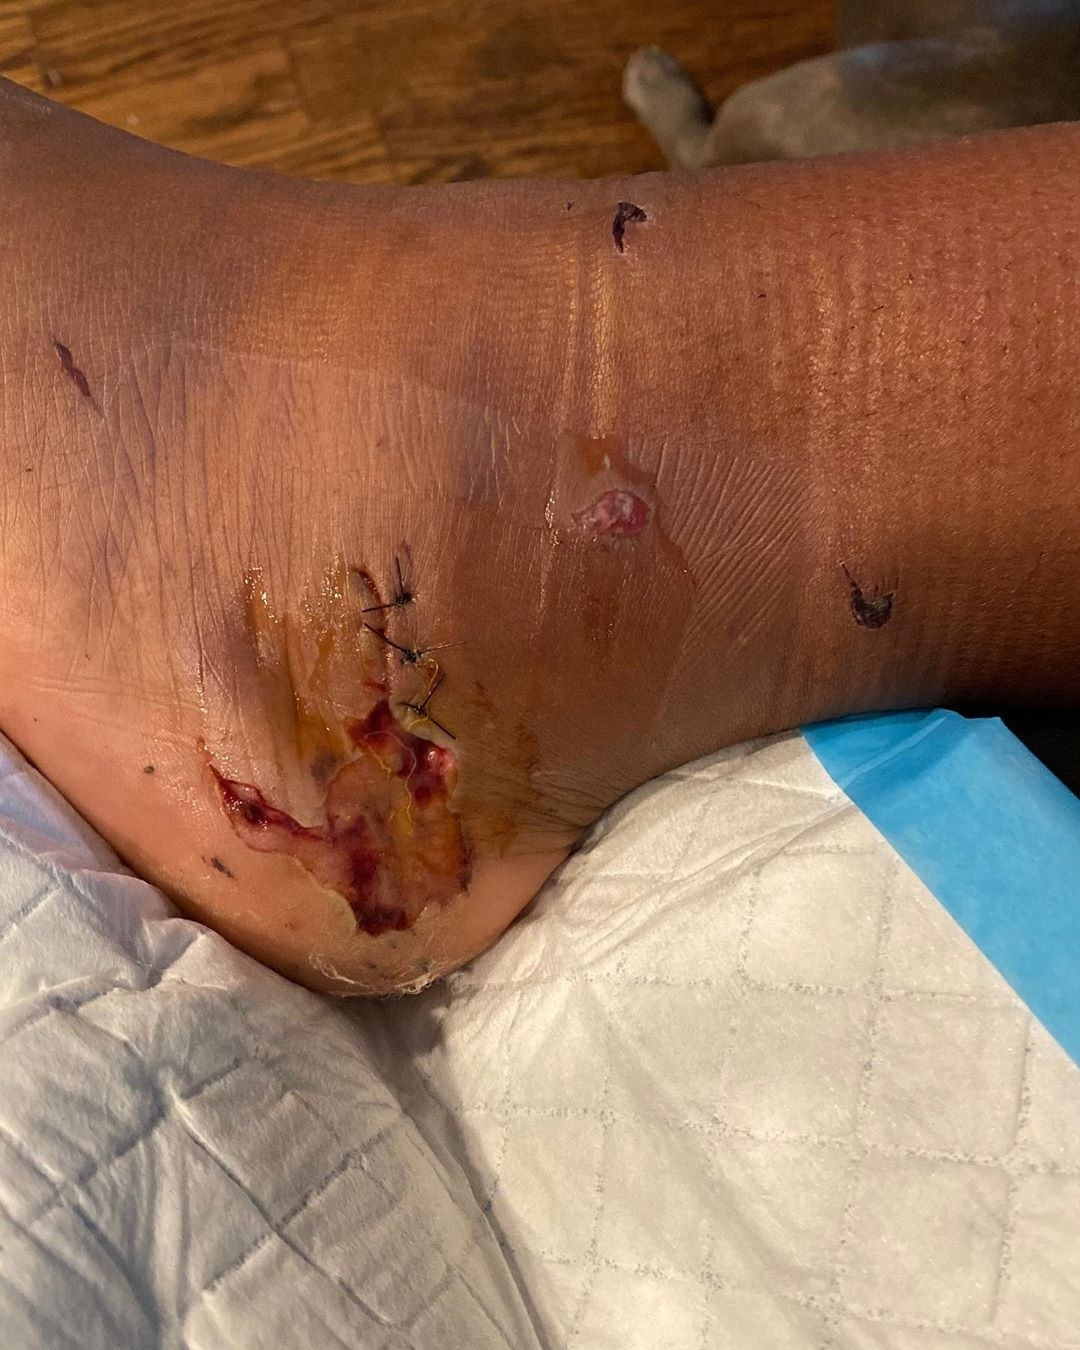 Megan The Stallion's gunshot wound on her feet